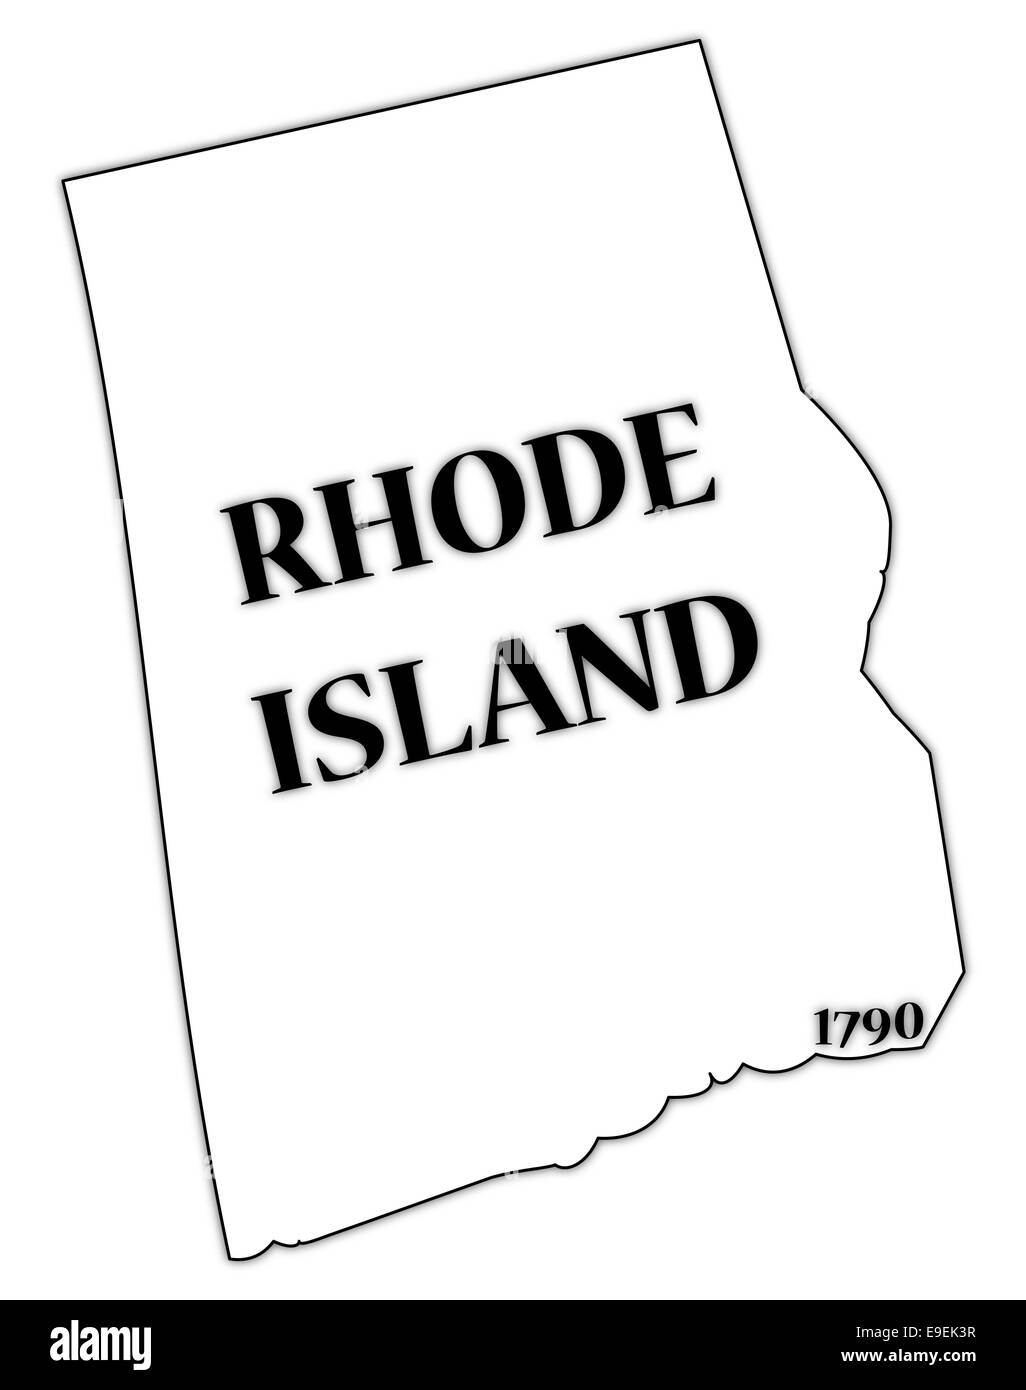 Adult sex dating in rhode island